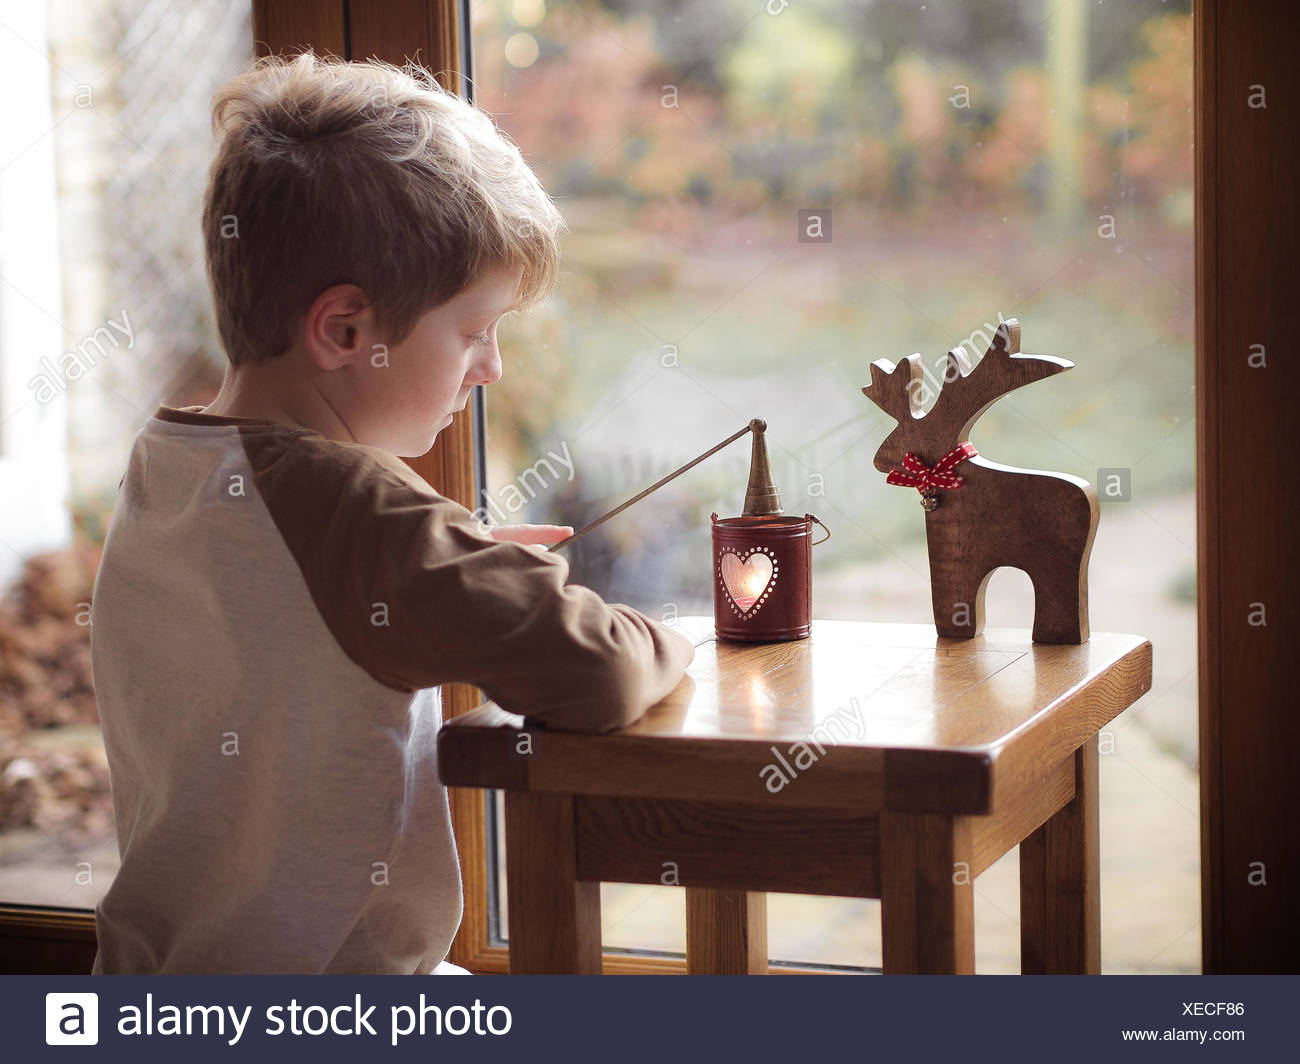 Boy (6-7) putting candle out of lantern - Stock Image